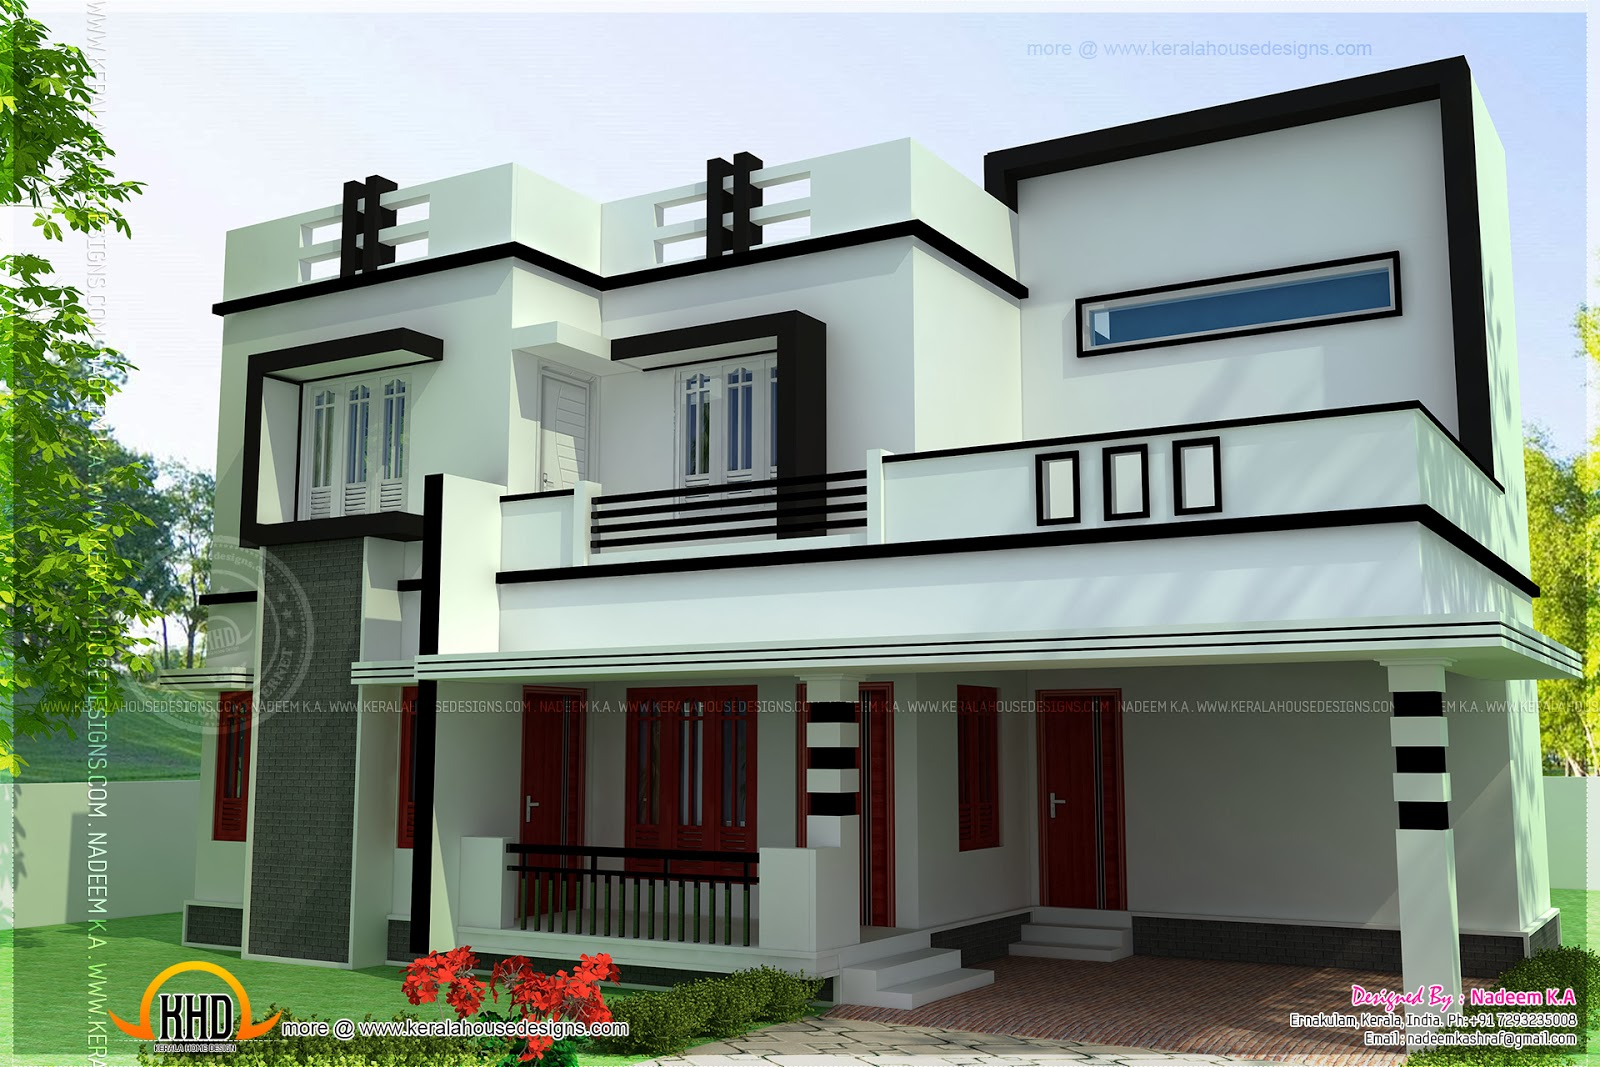 Flat roof 4 bedroom modern house kerala home design and for Flat roof home plans